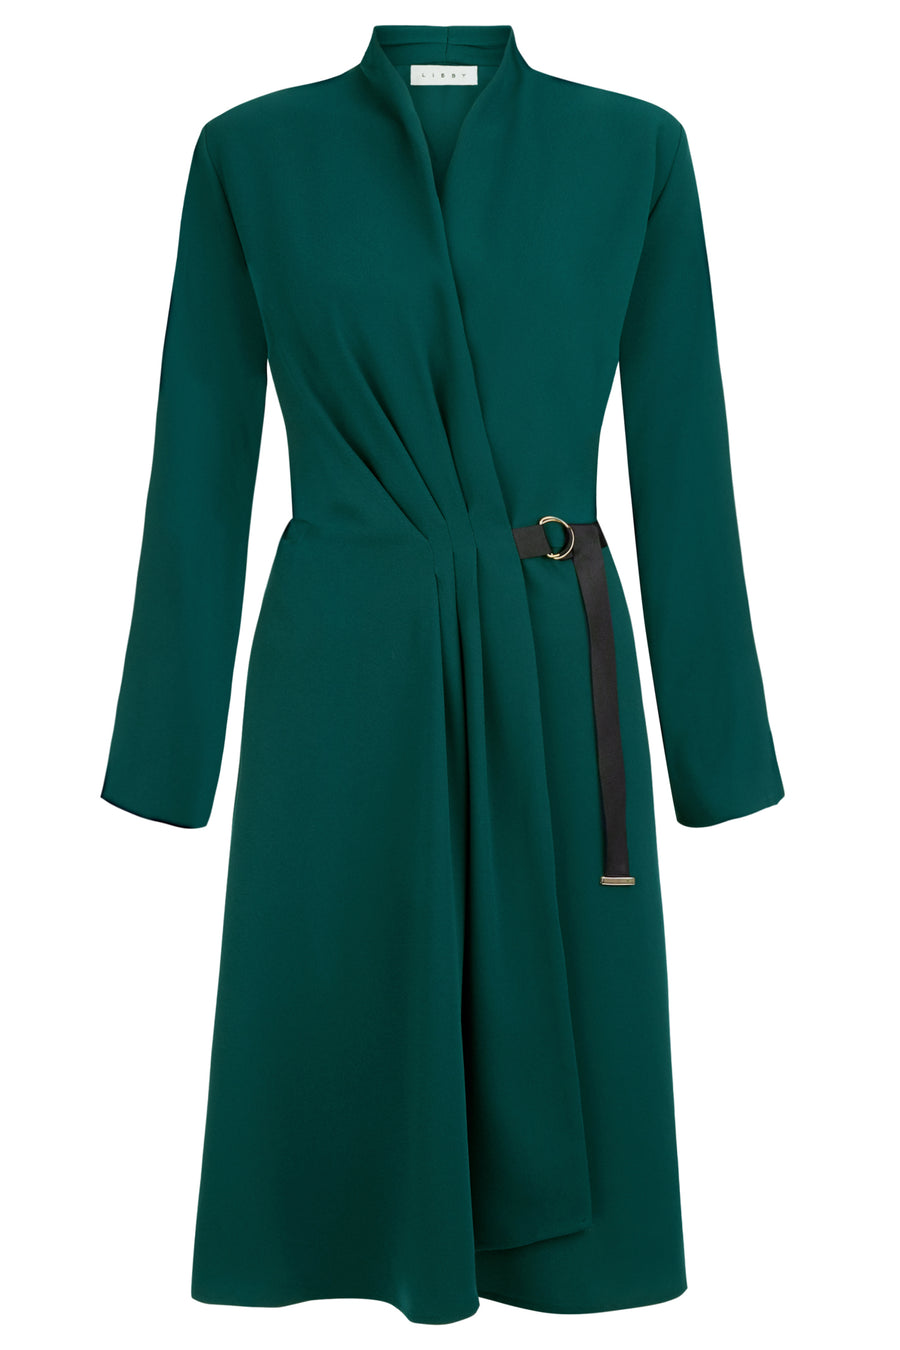 Cheyne Green Dress